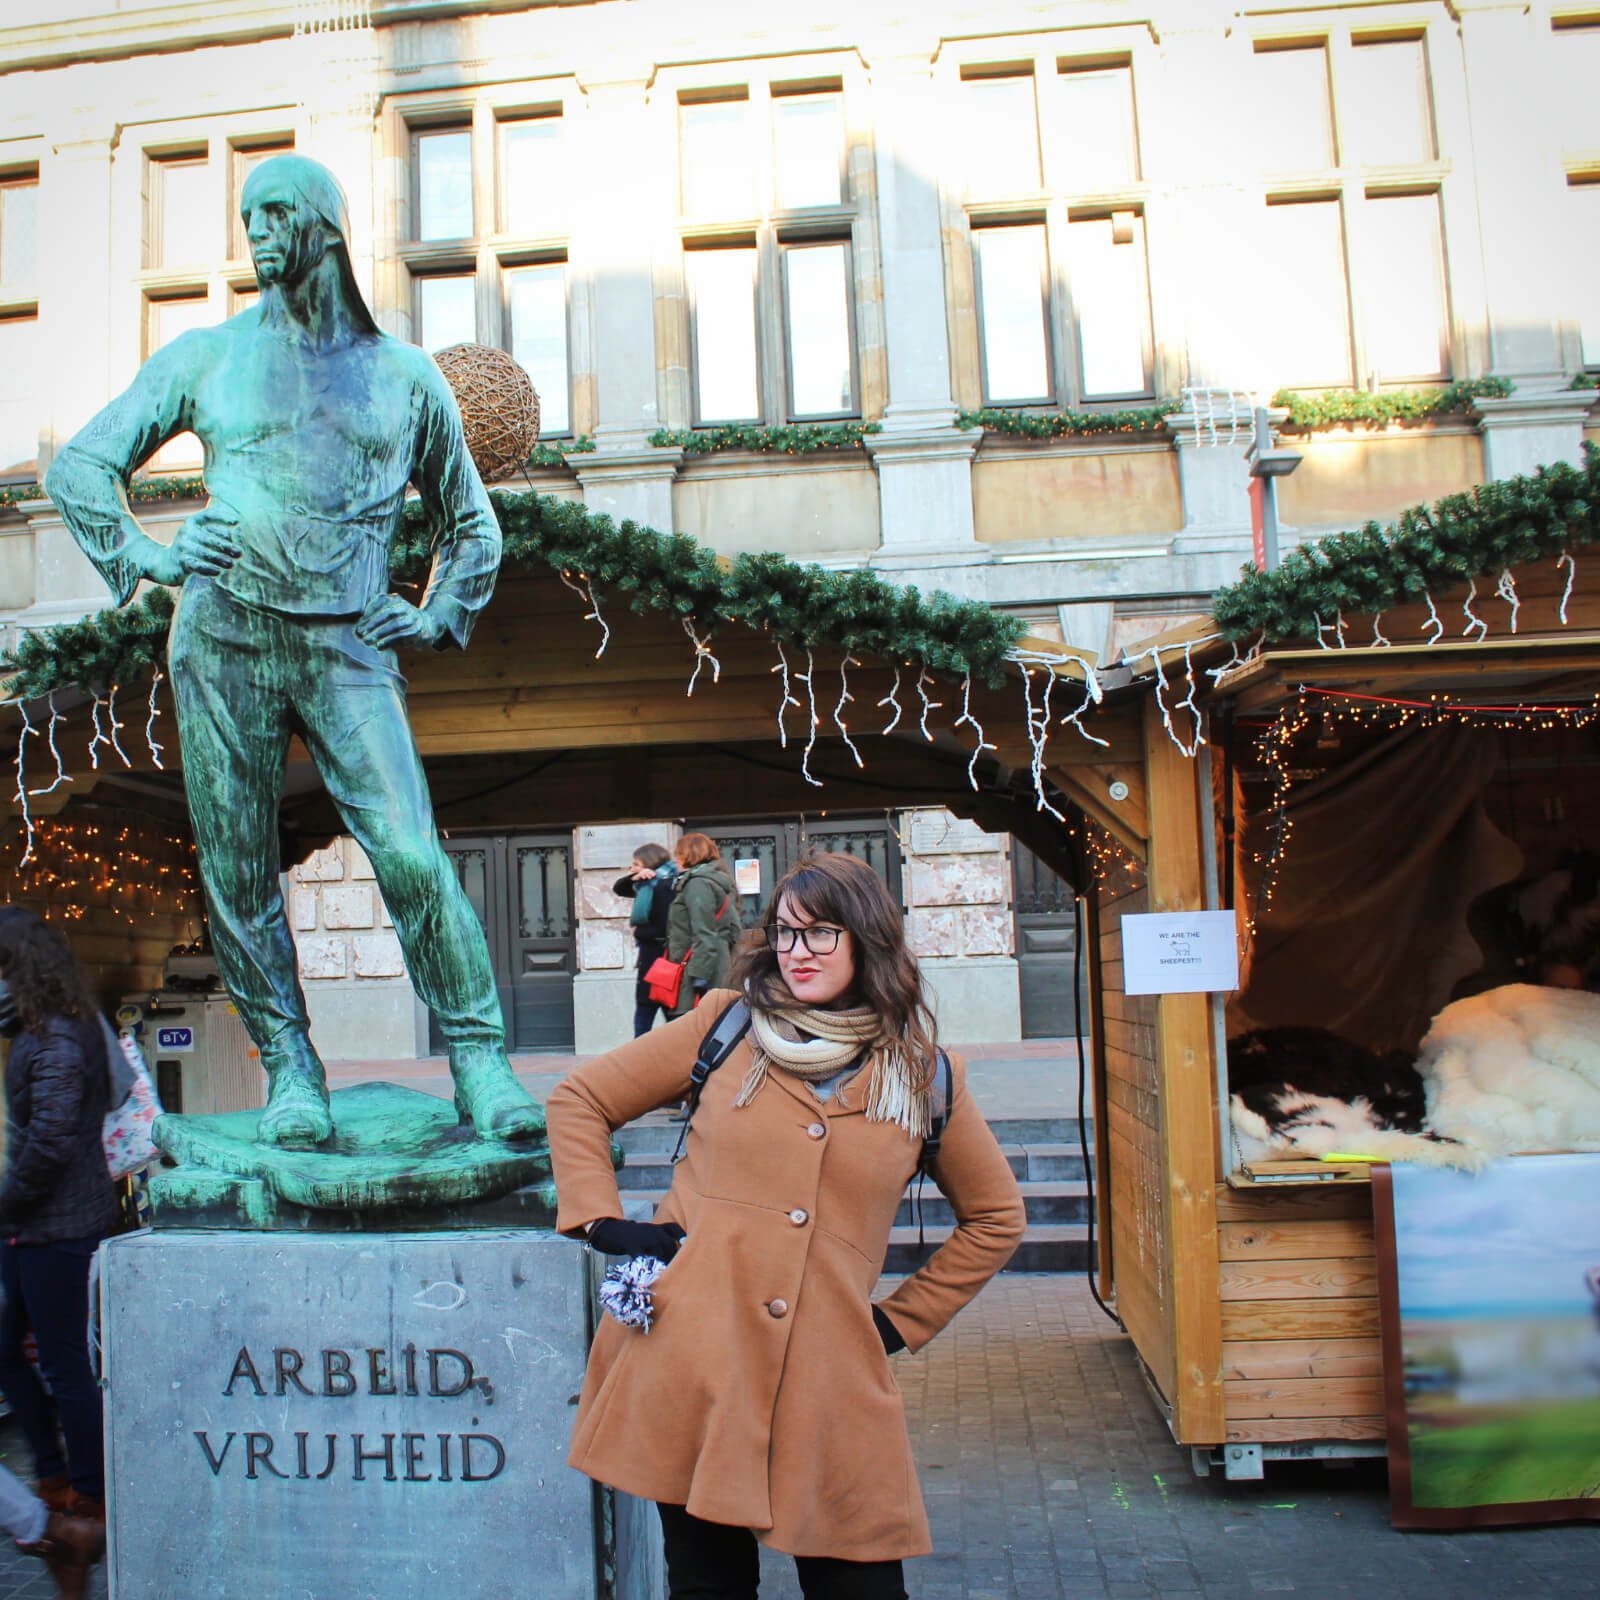 Lia and the most fabulous statue we've ever seen in Antwerp, Belgium.